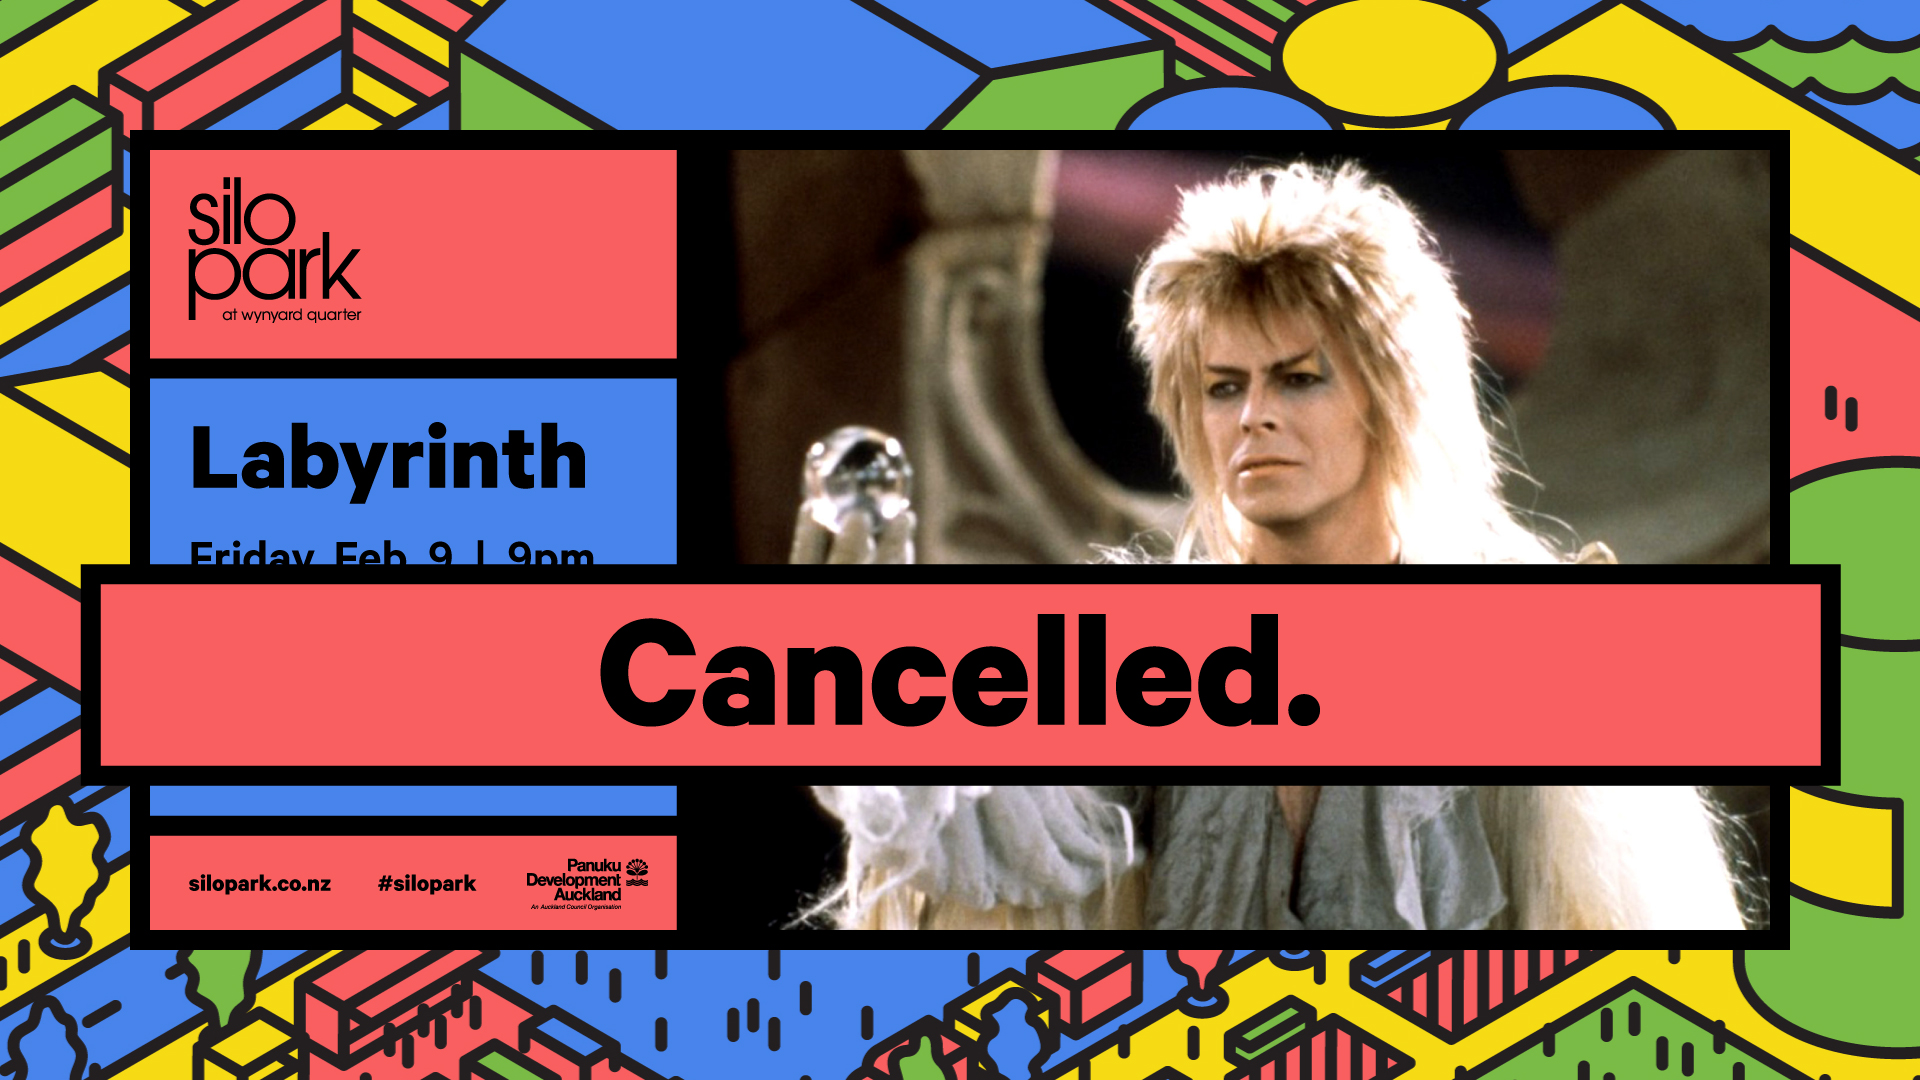 Silo Park Facebook Film_Cancelled_Labyrinth.jpg